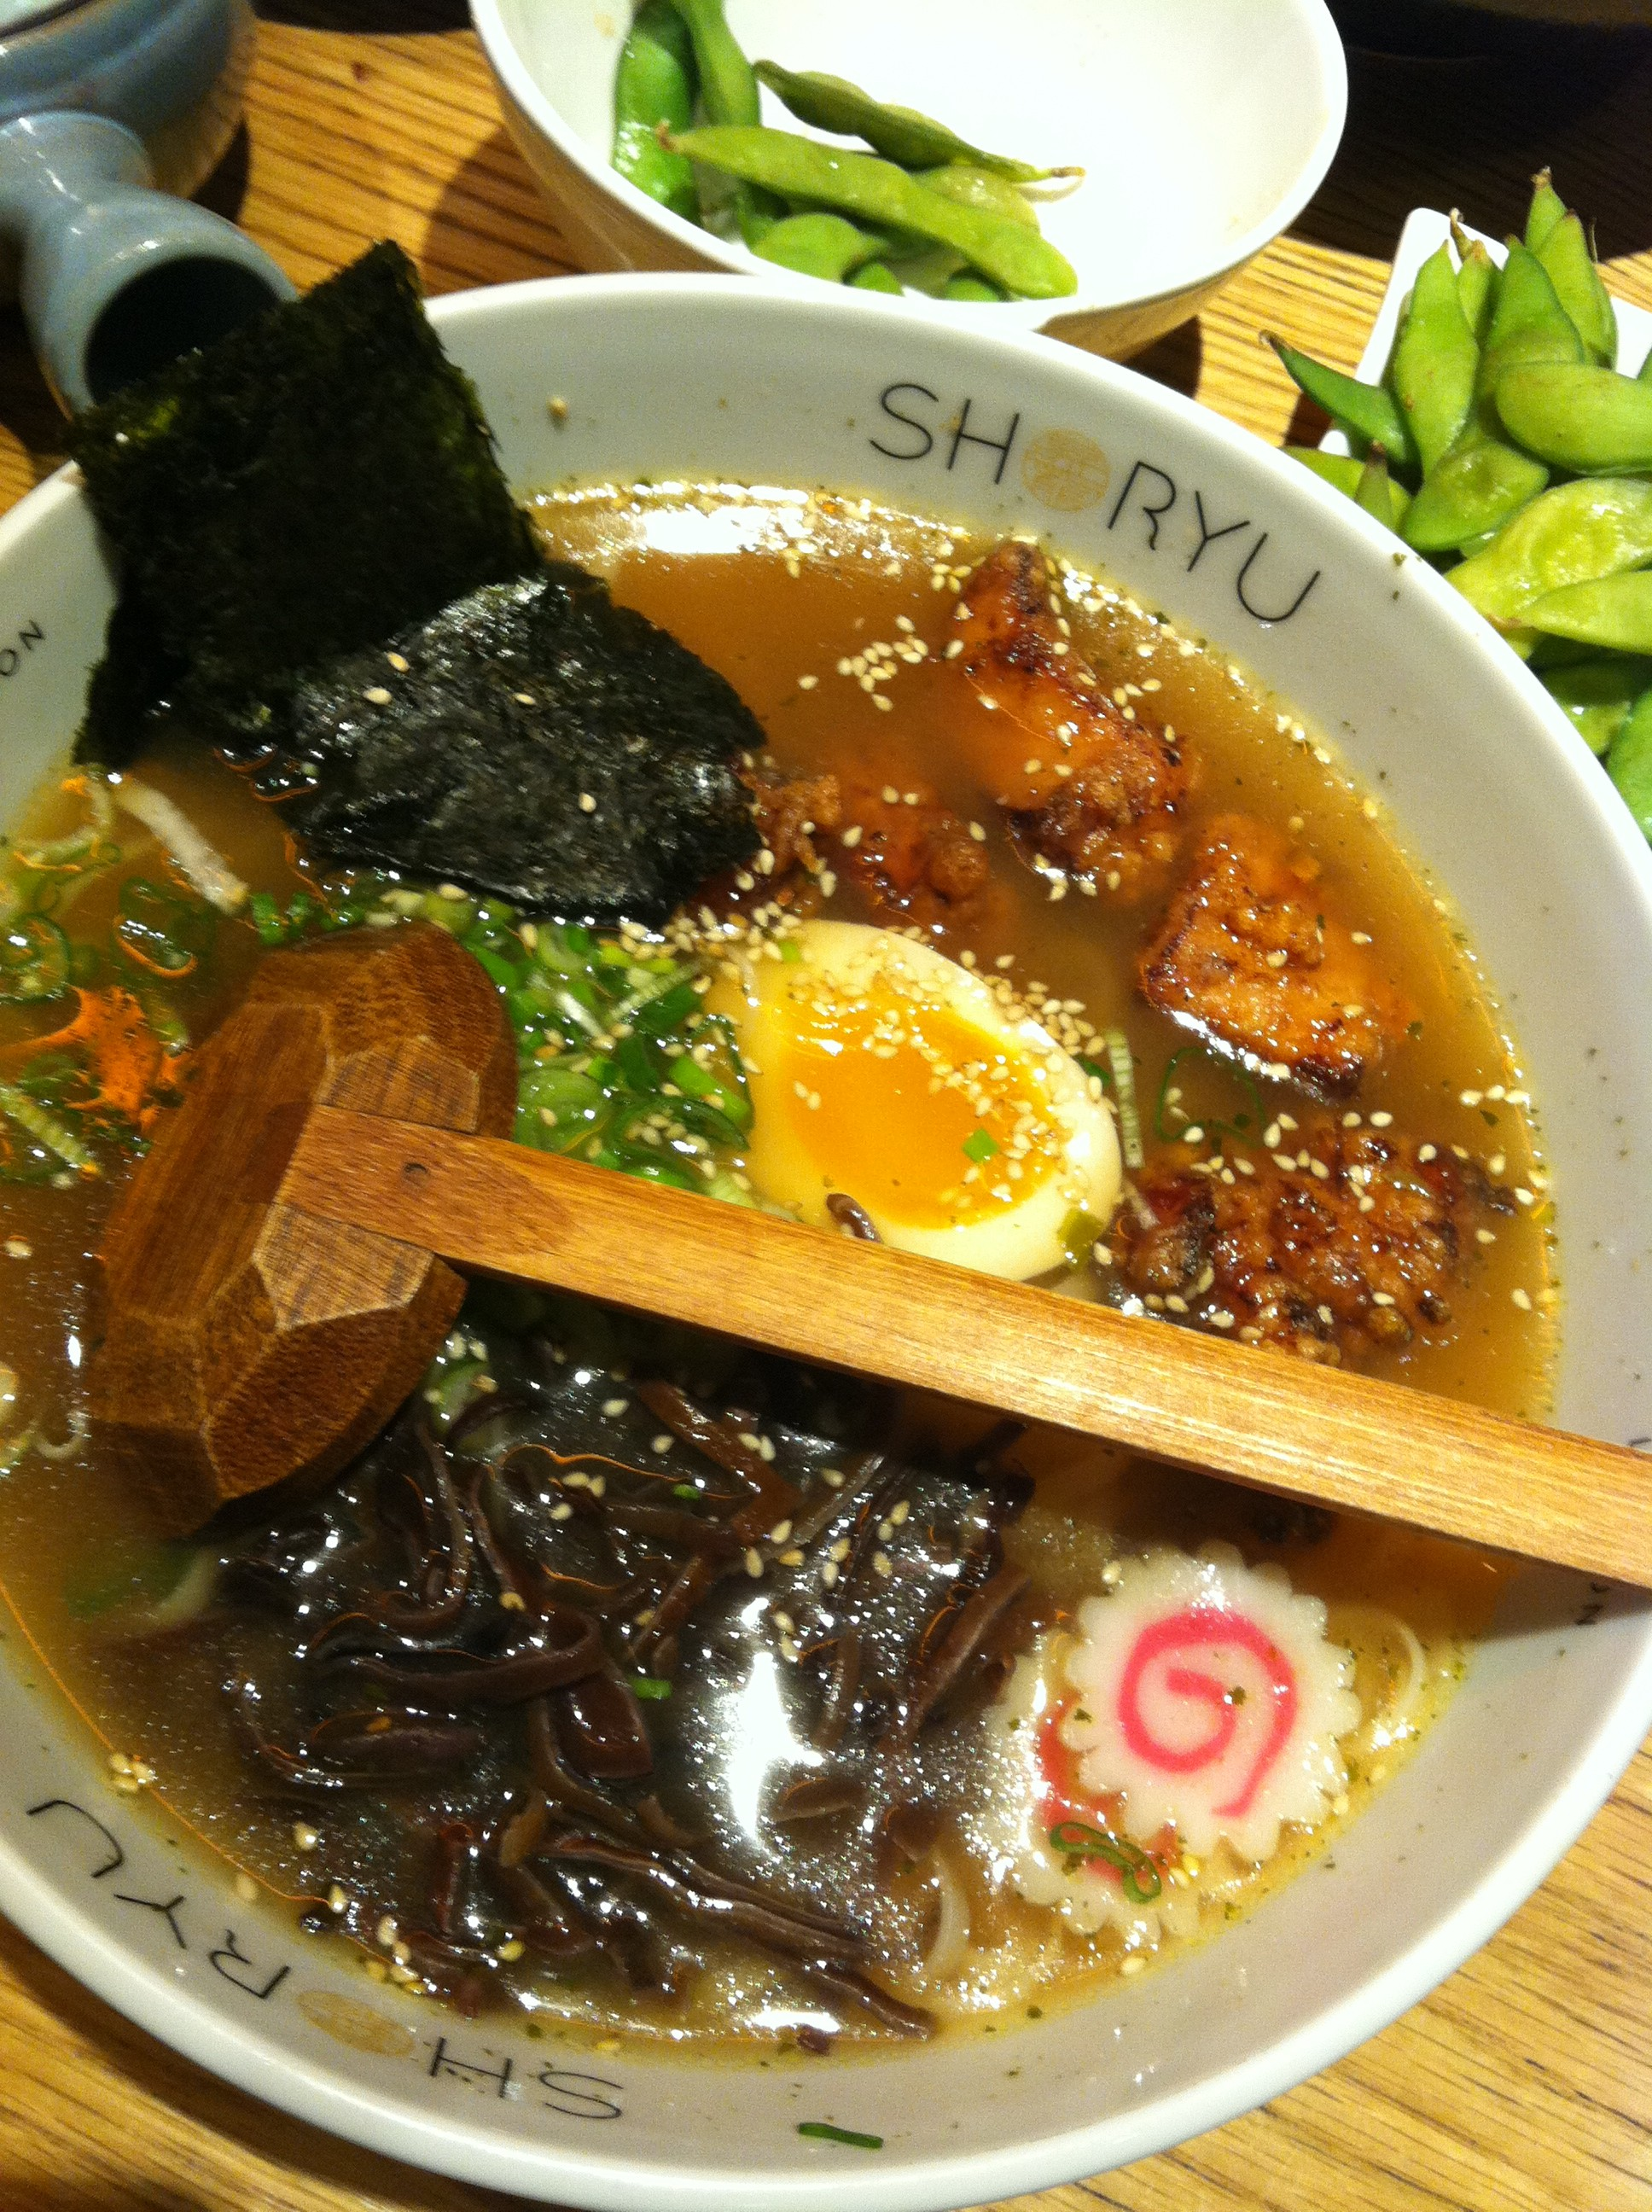 Tori Kara-Age Rice Noodles at Shoryu Ramen, Japanese restaurant, Piccadilly Circus